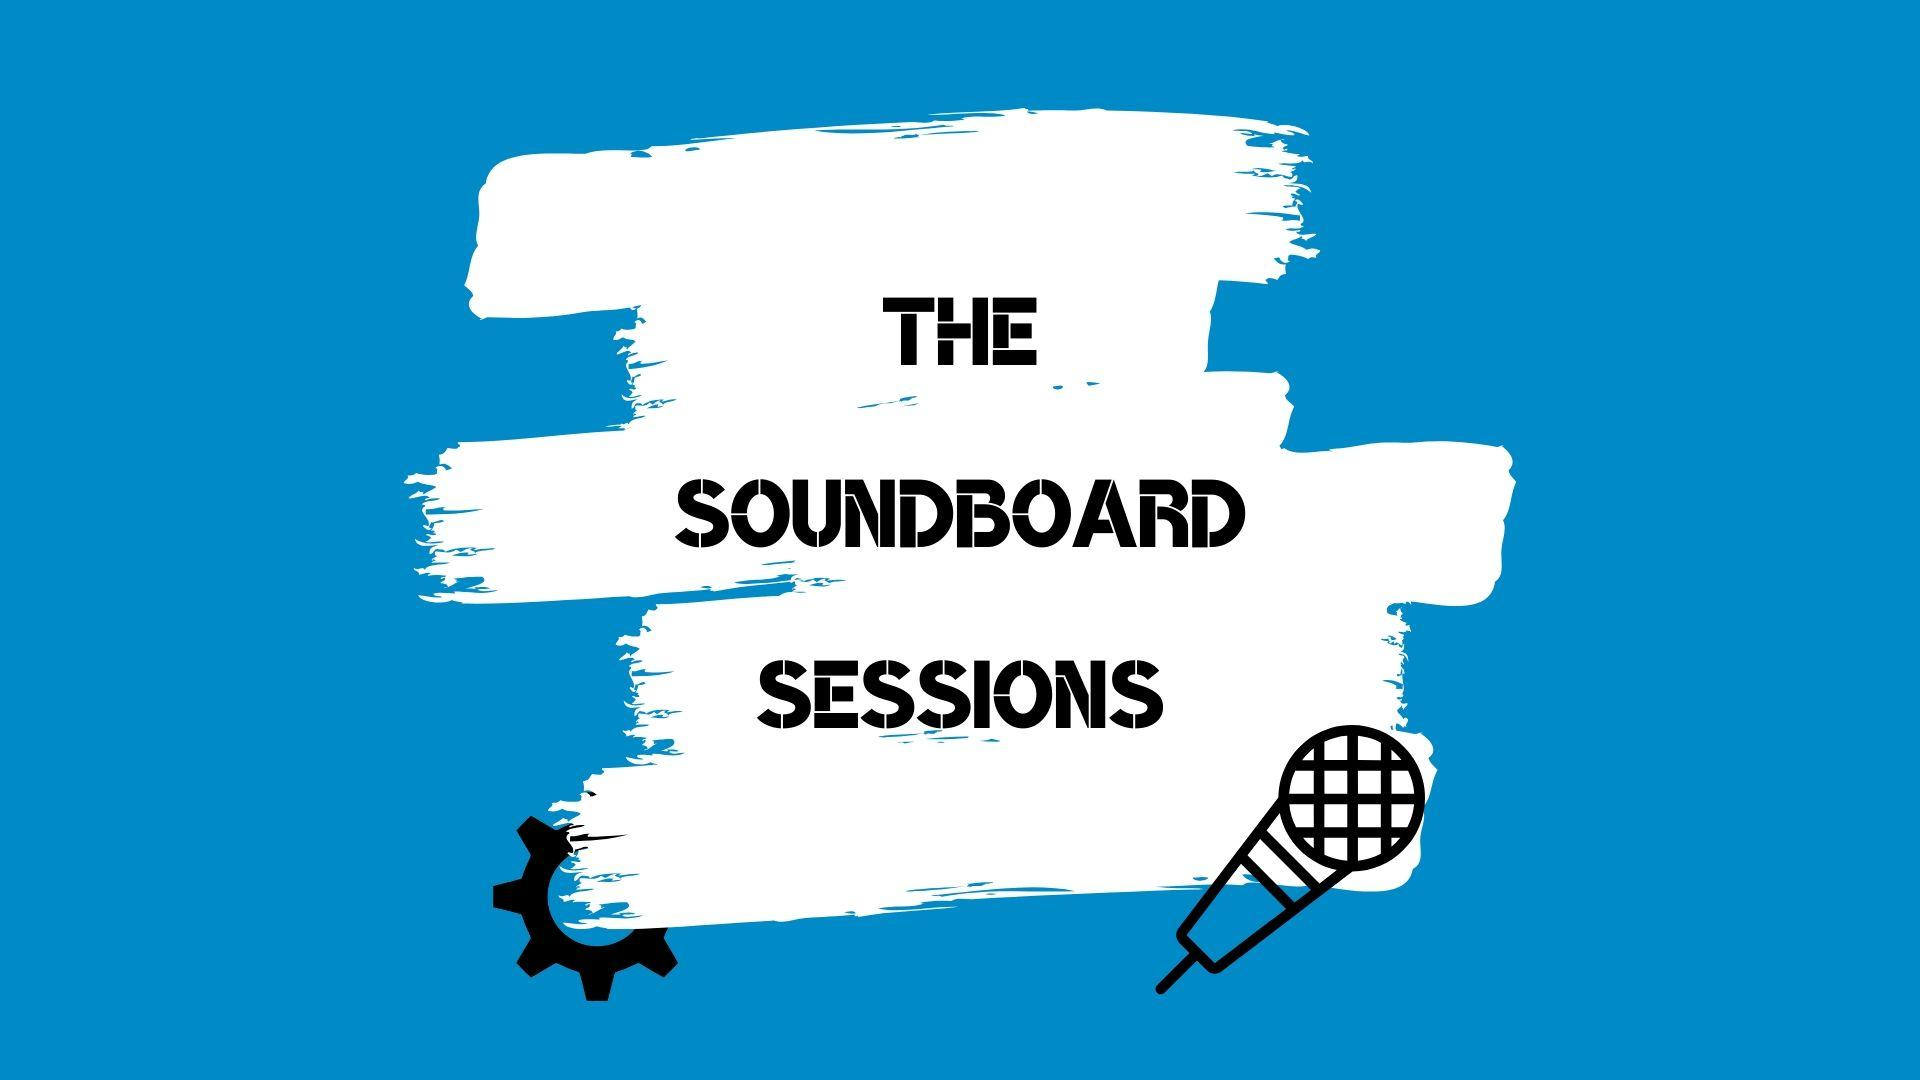 The Soundboard Sessions